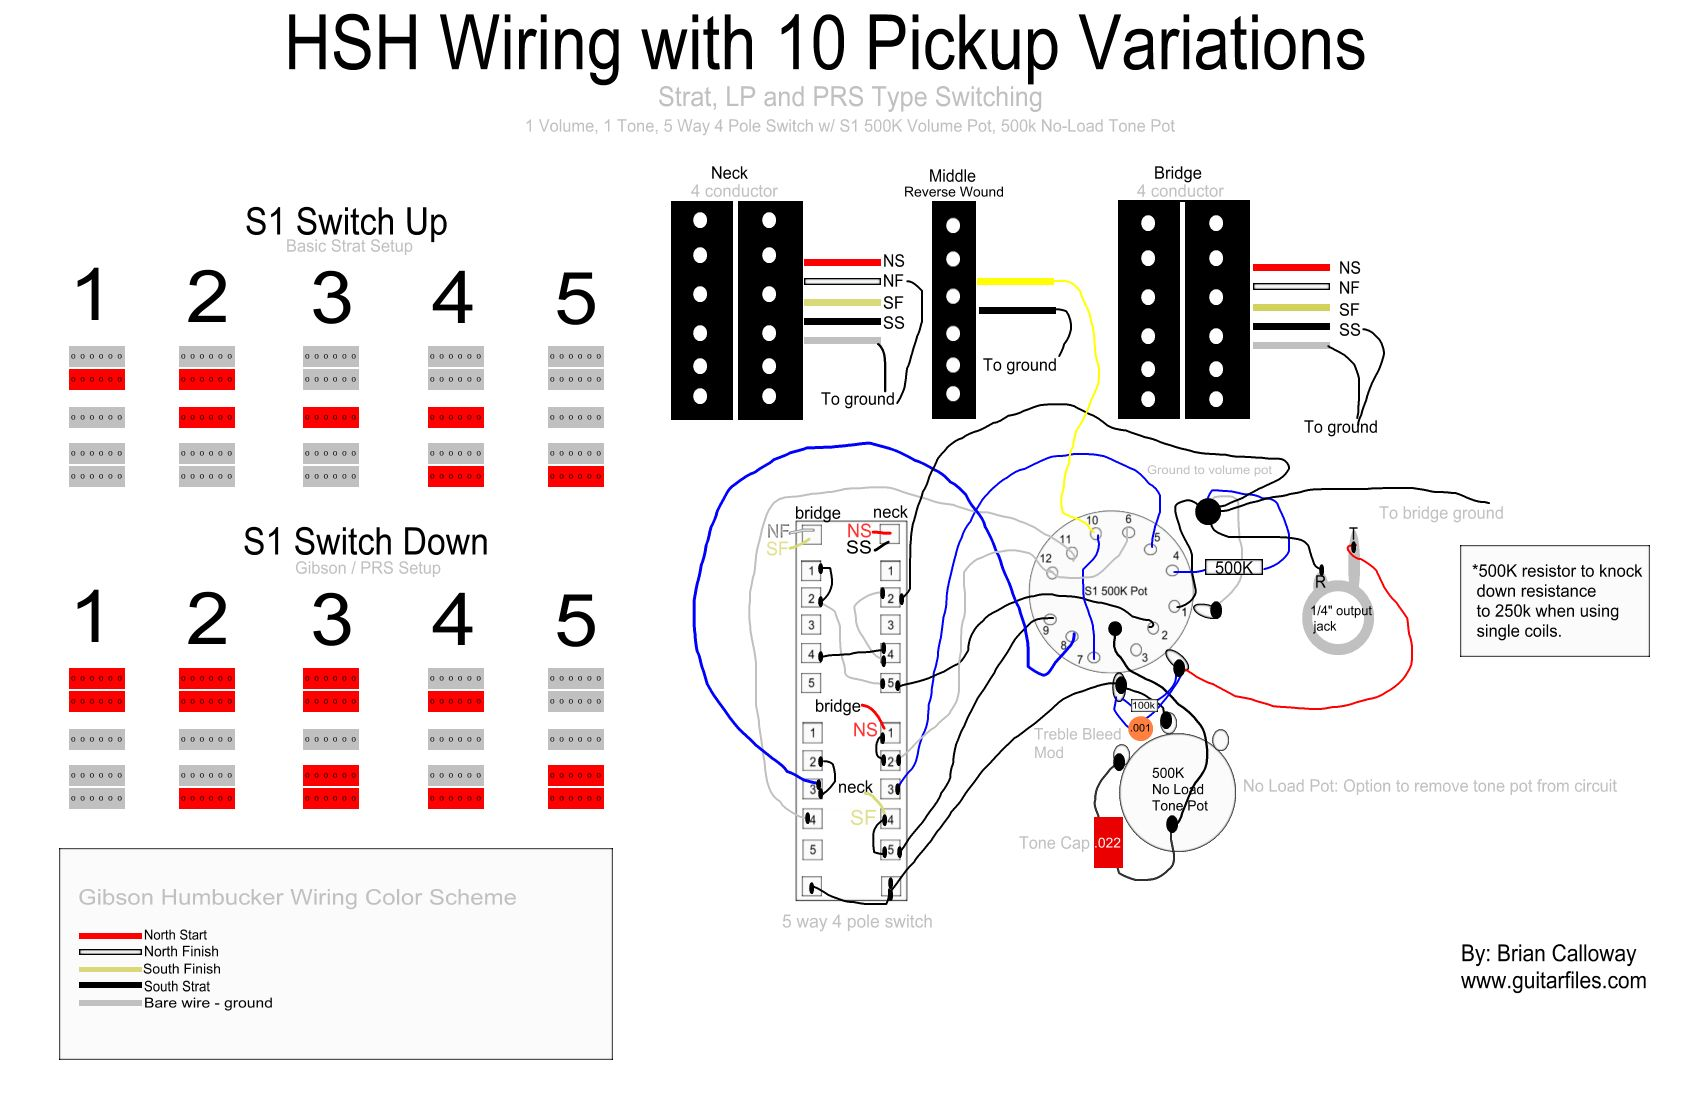 hsh guitar wiring 10 pickup combinations 4 pole switch and s1 hsh guitar wiring 10 pickup combinations 4 pole switch and s1 [ 1692 x 1115 Pixel ]